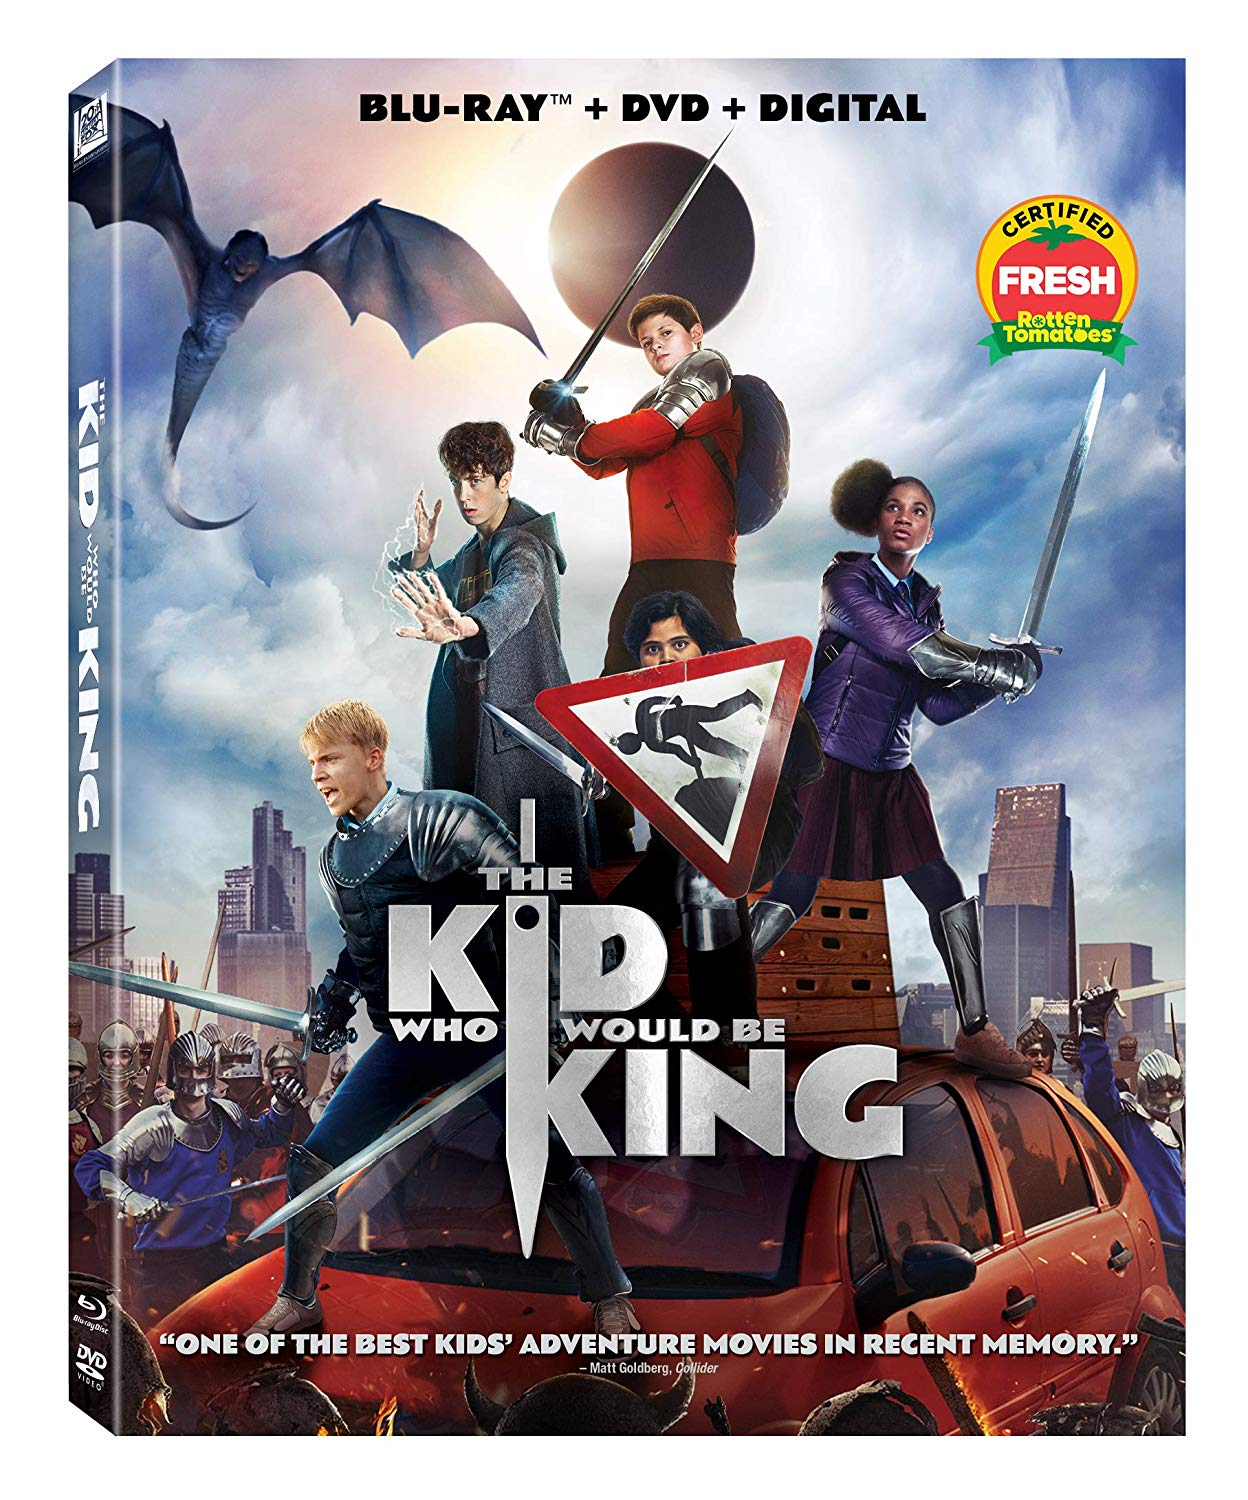 the 10th kingdom blu ray